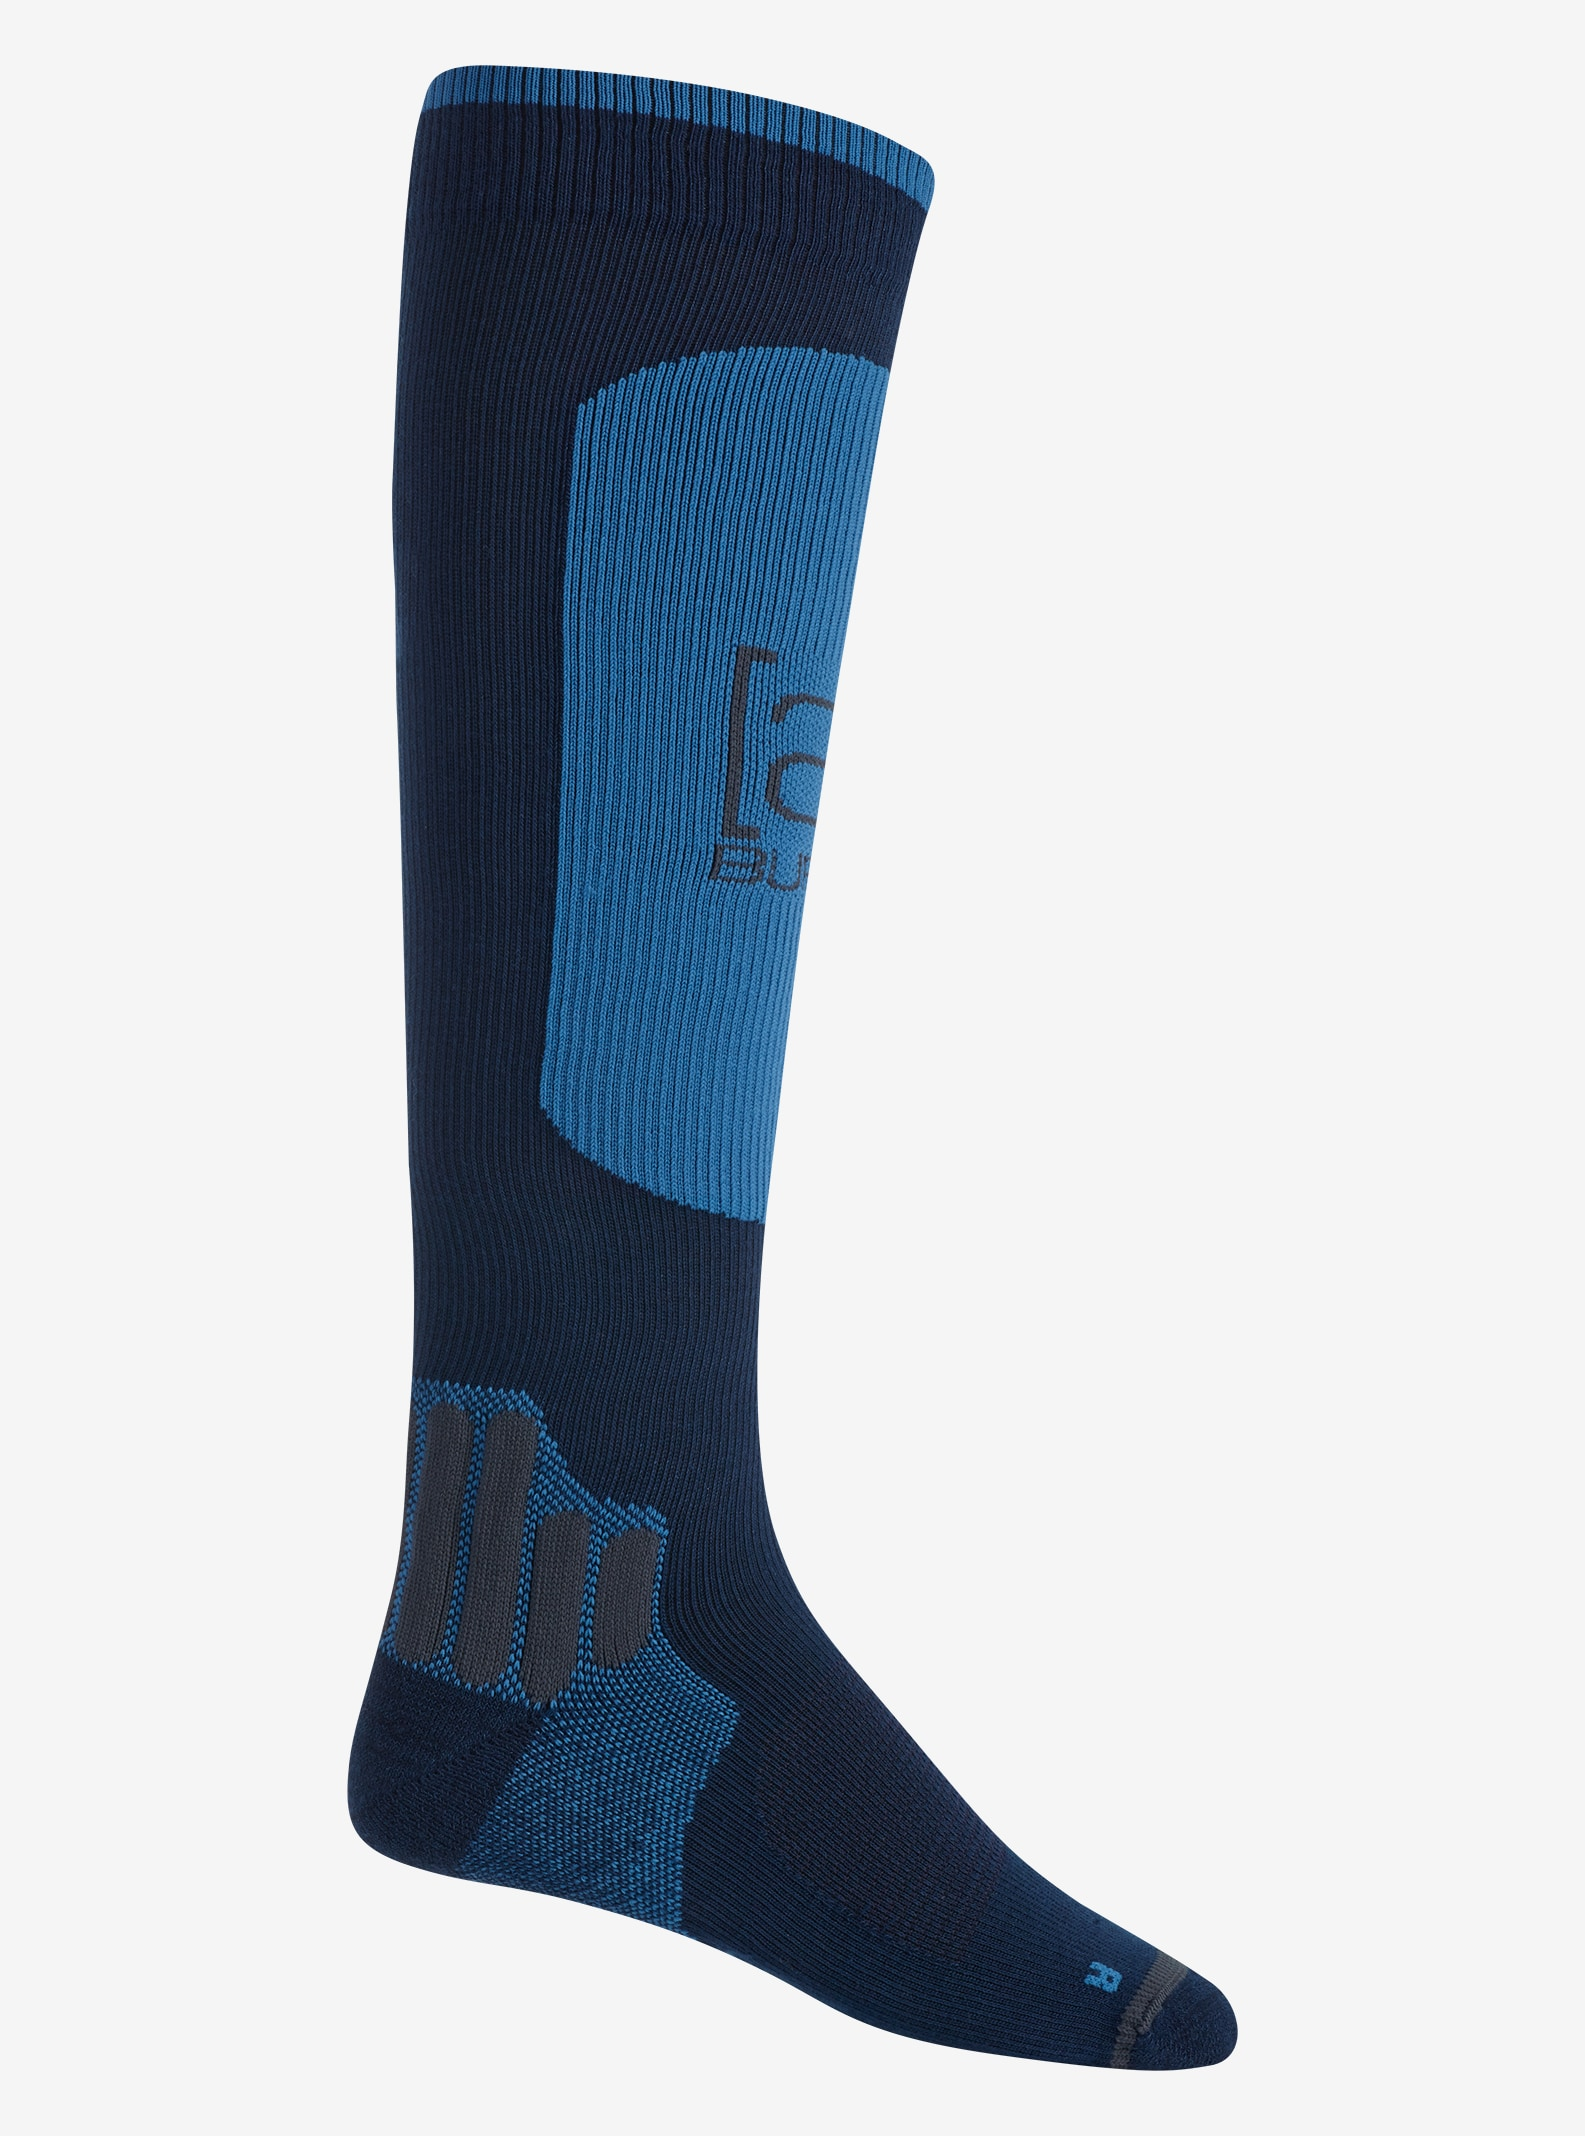 Men's Burton [ak] Endurance Sock shown in Mood Indigo